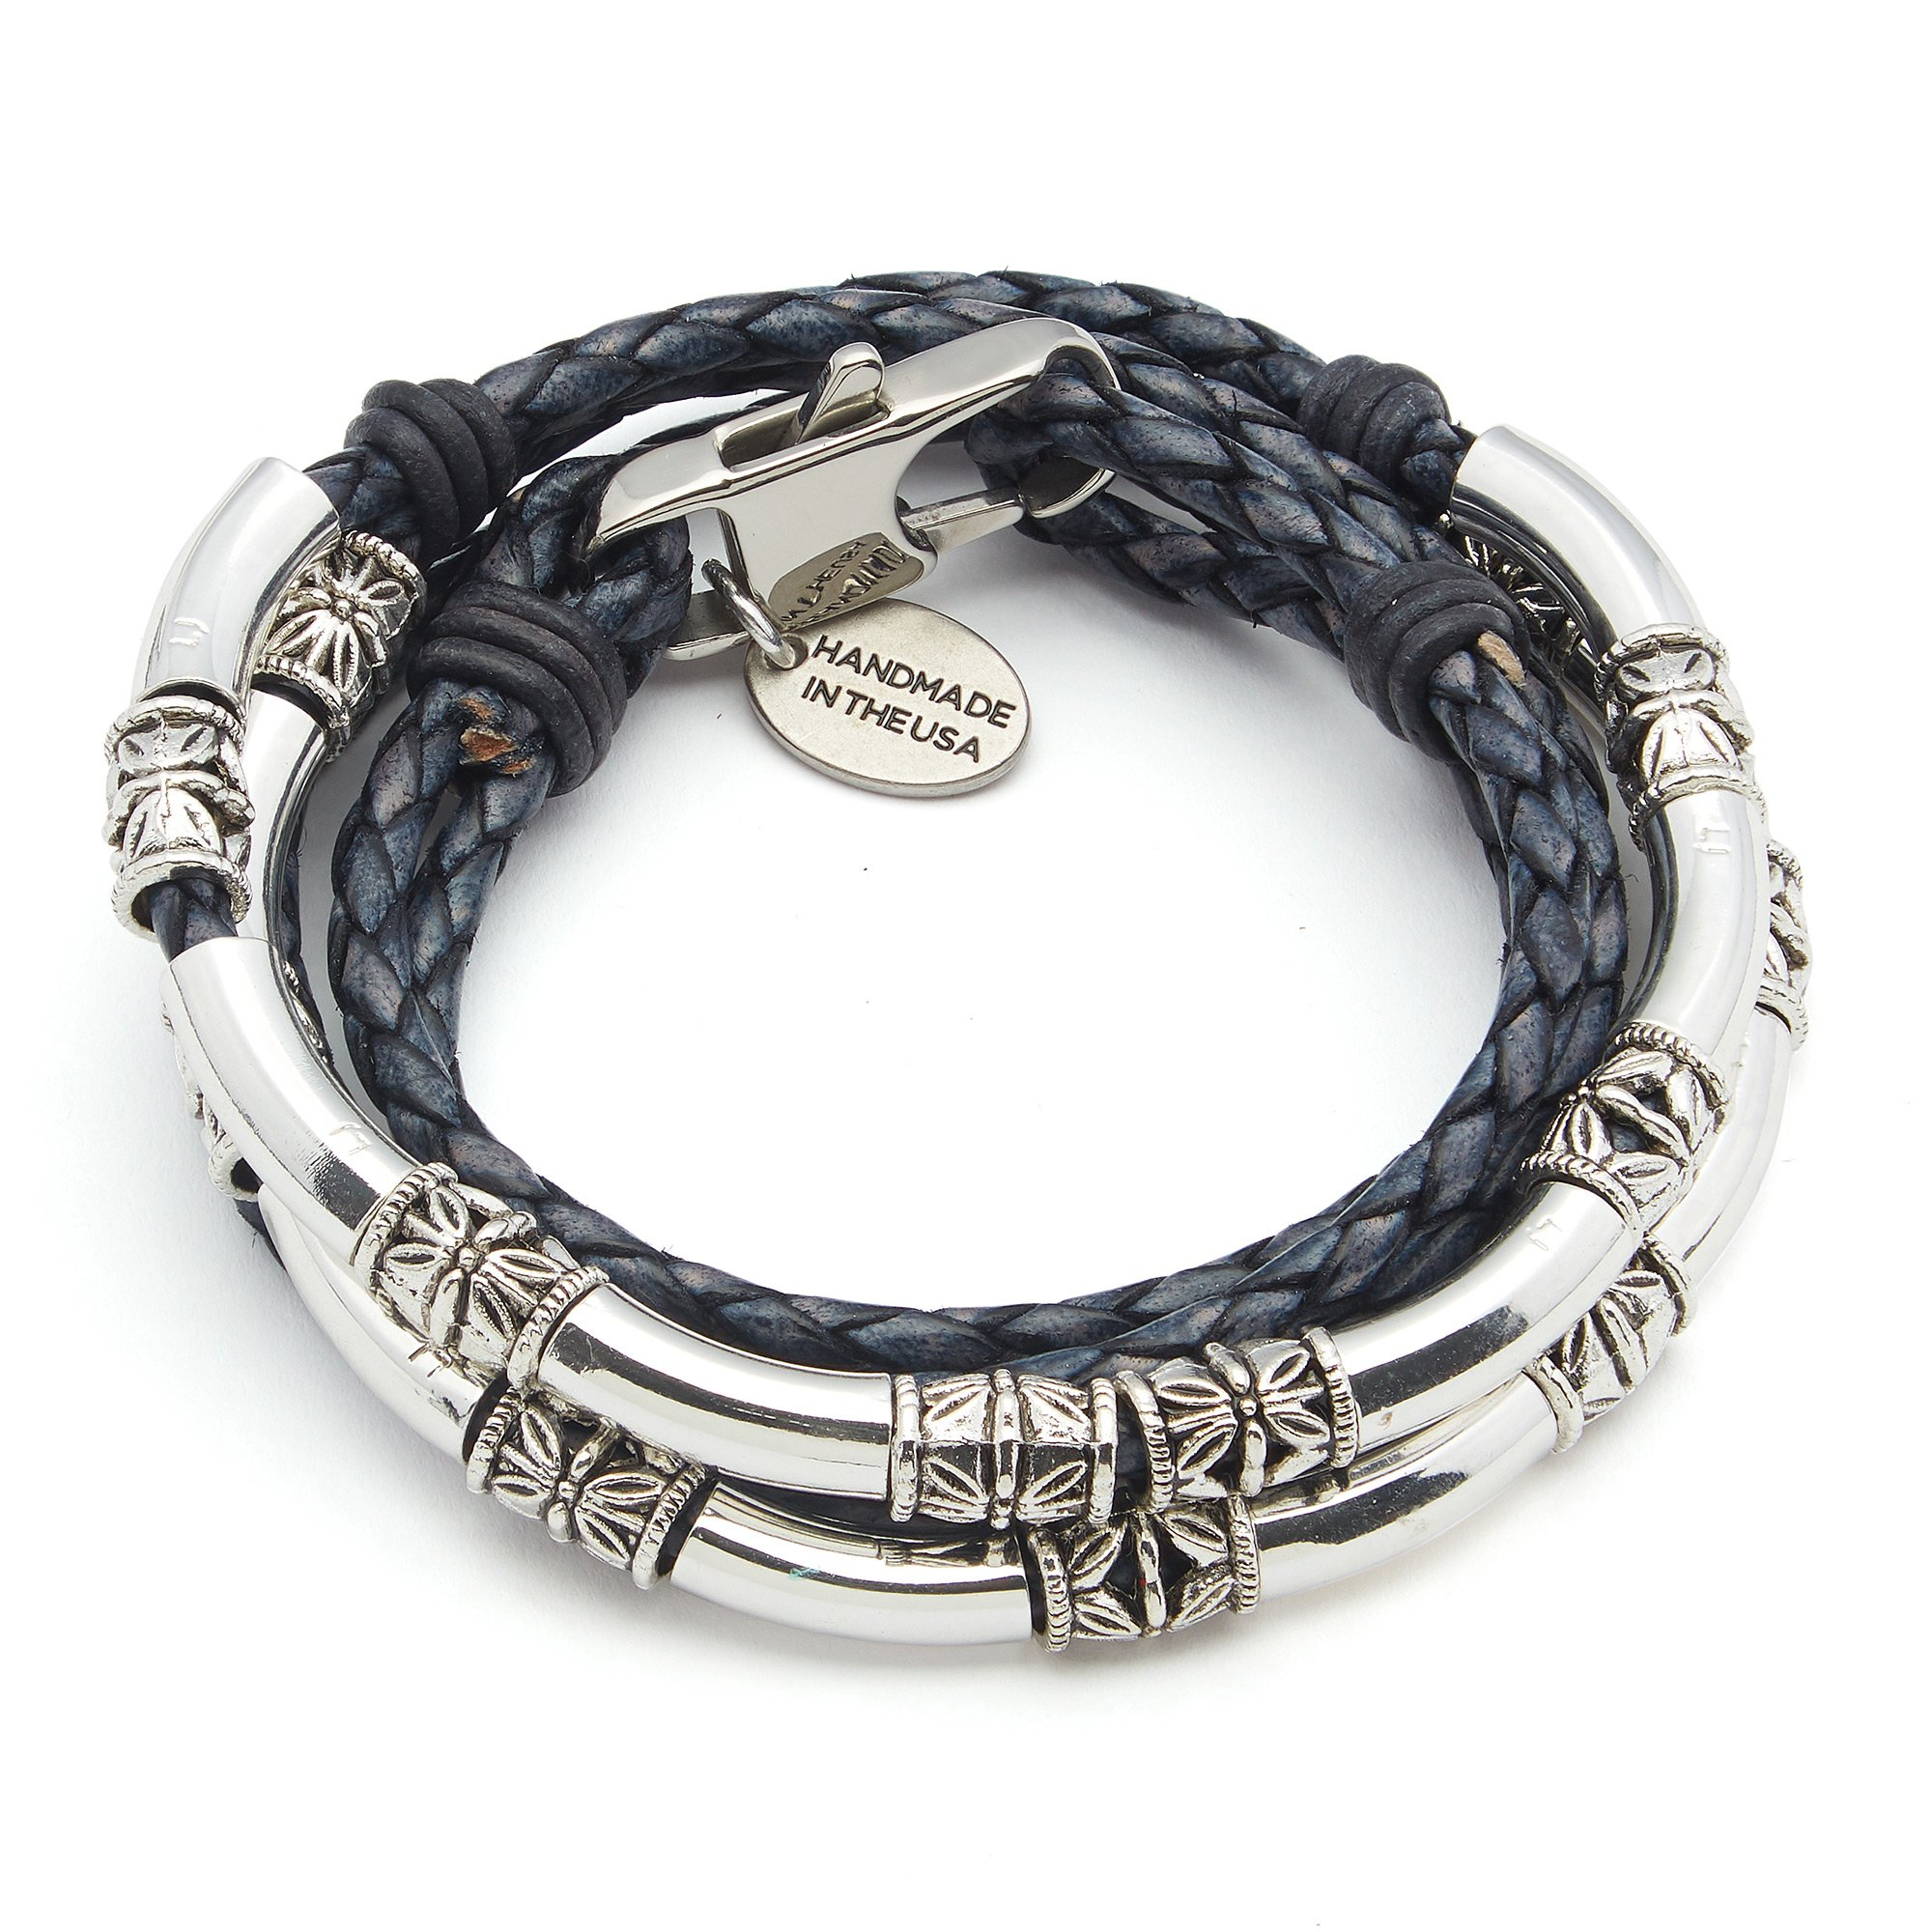 Lizzy James Mini Maxi Silver Plated 2 Strand Braided Leather Wrap Bracelet in Natural Pacific Blue Leather (Large) by Lizzy James